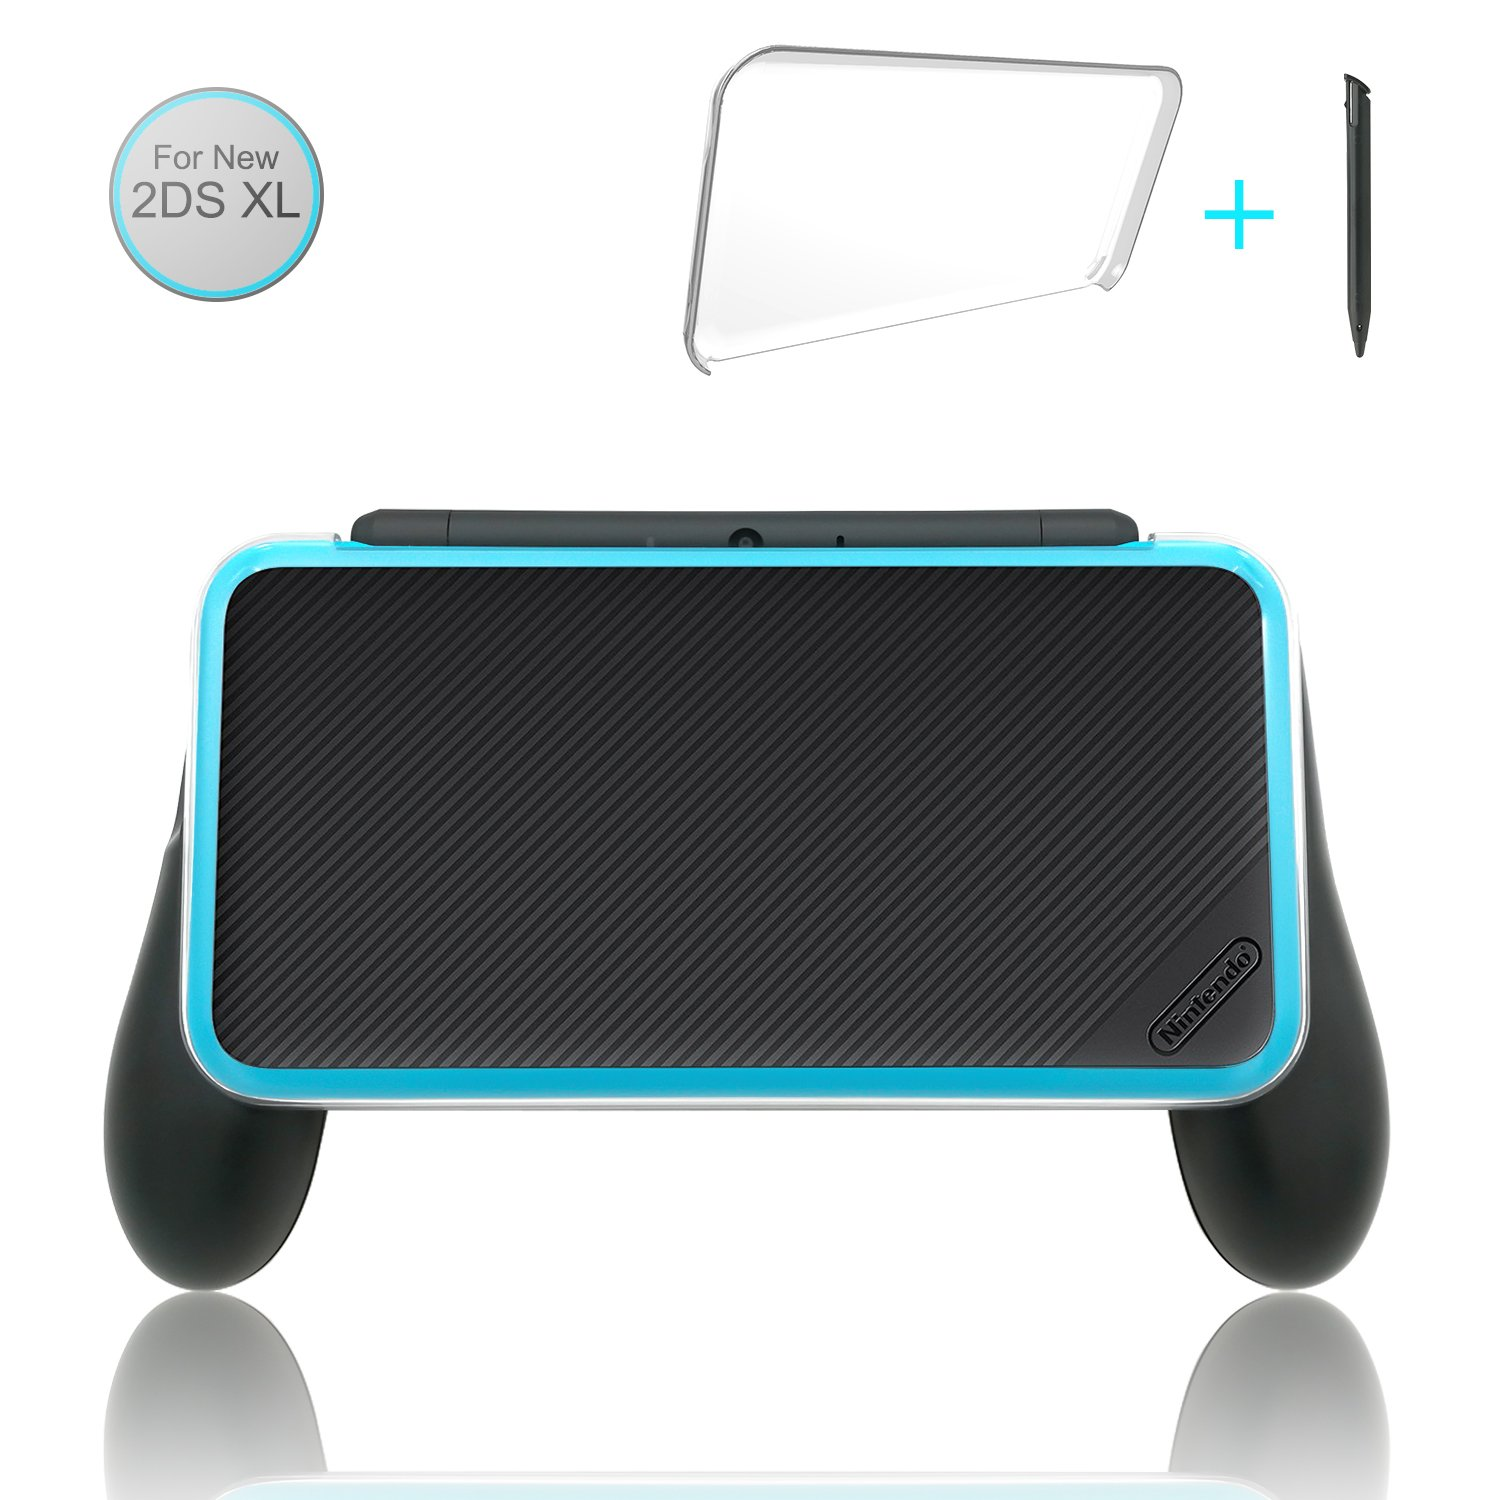 FastSnail Comfort Grip Kit for your NEW Nintendo 2DS XL, 3 in 1 Accessories Kit for 2DS XL (Hand Grip + Crystal Cover + Stylus)